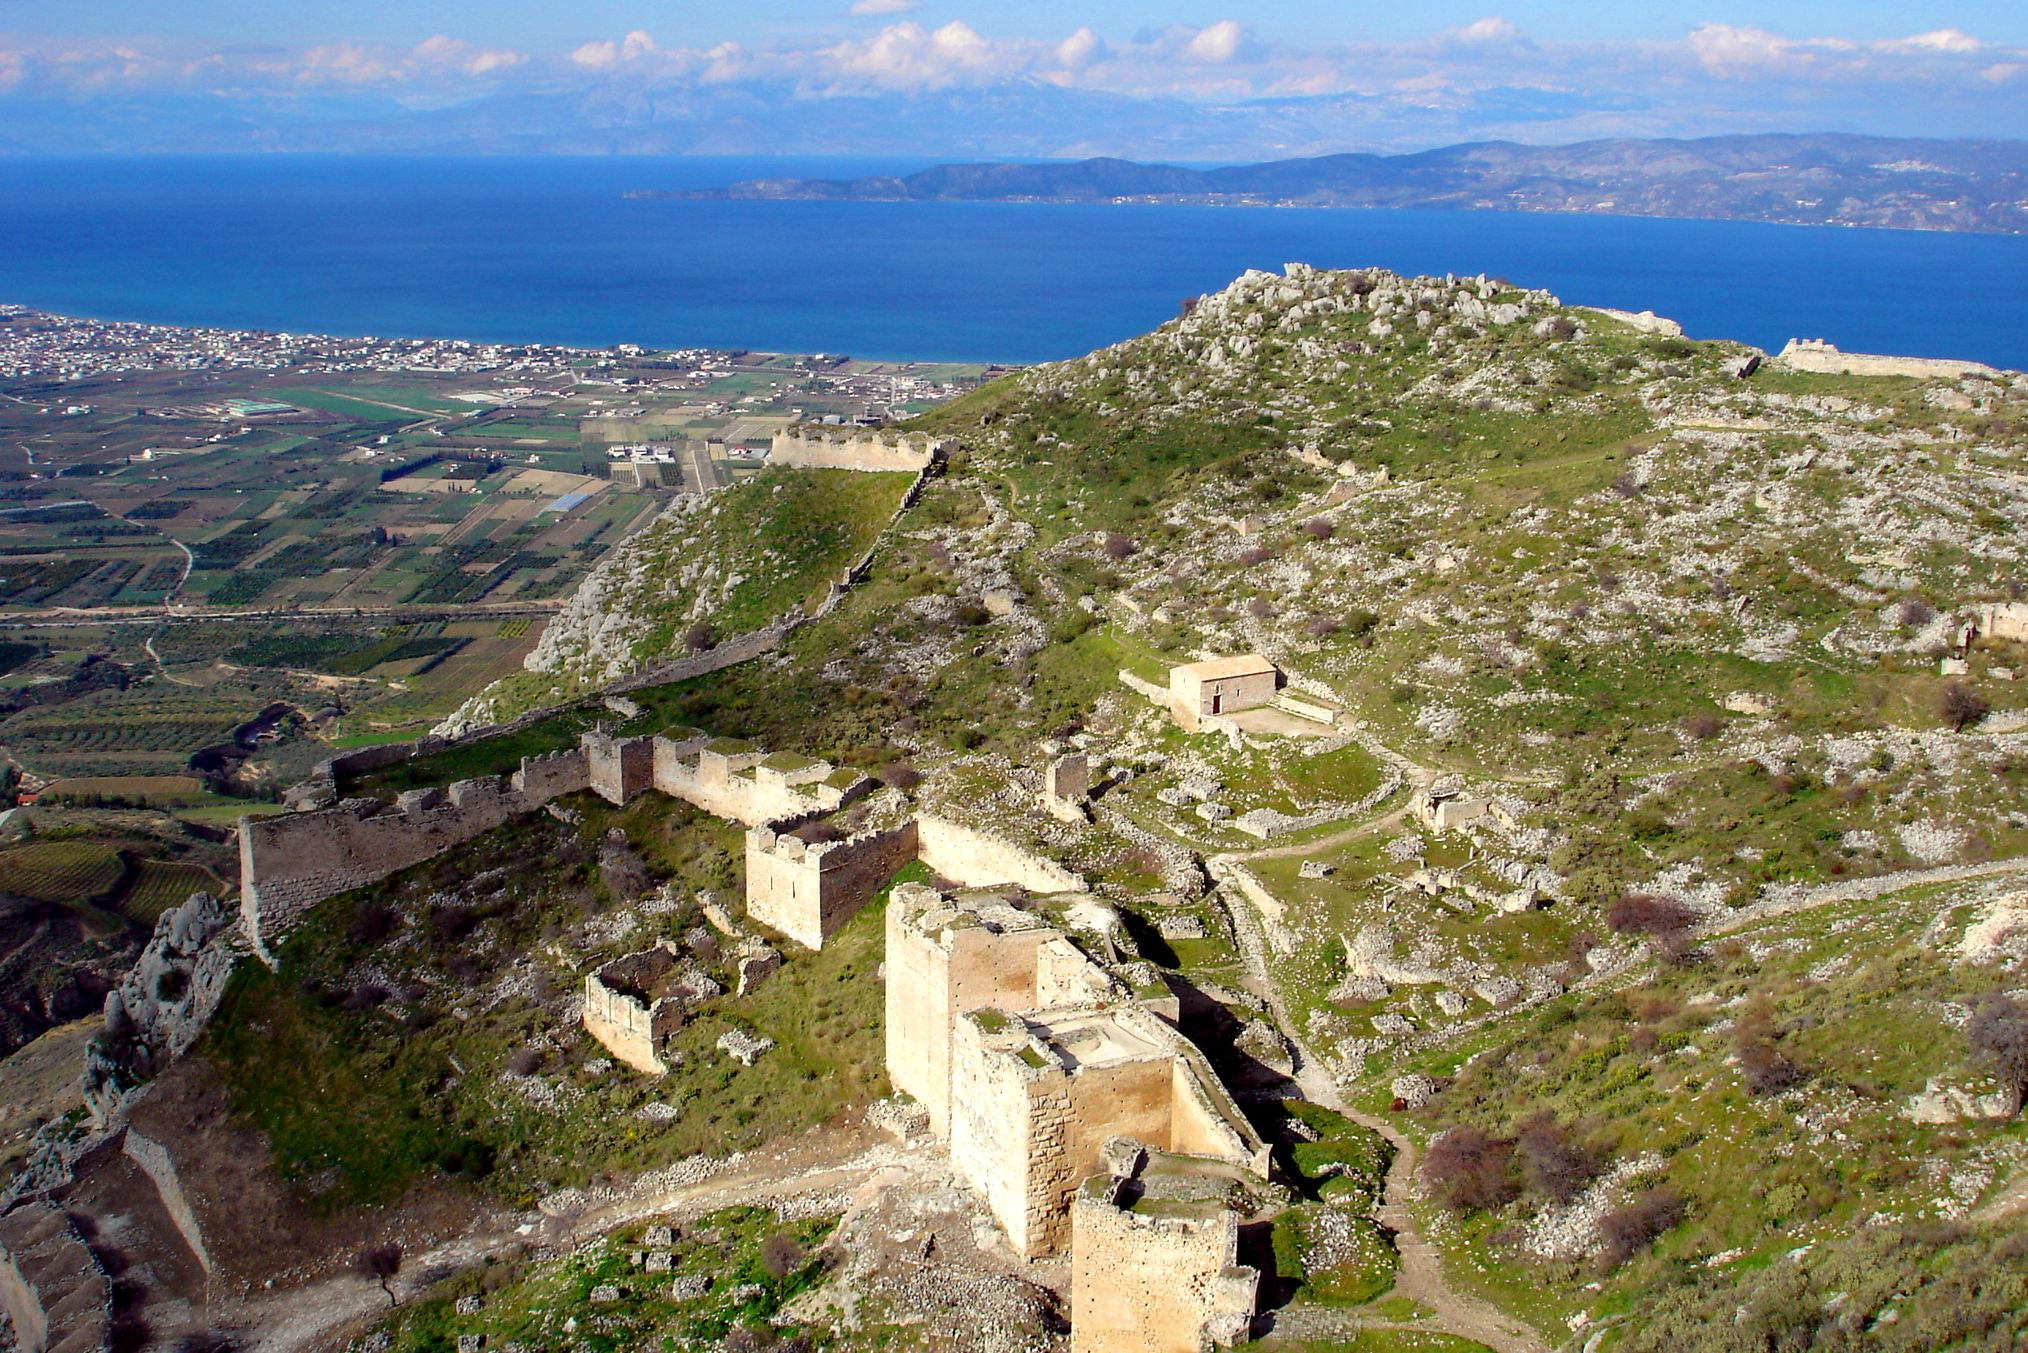 Corinth Greece  city photos gallery : Castle of Acrocorinth Overview